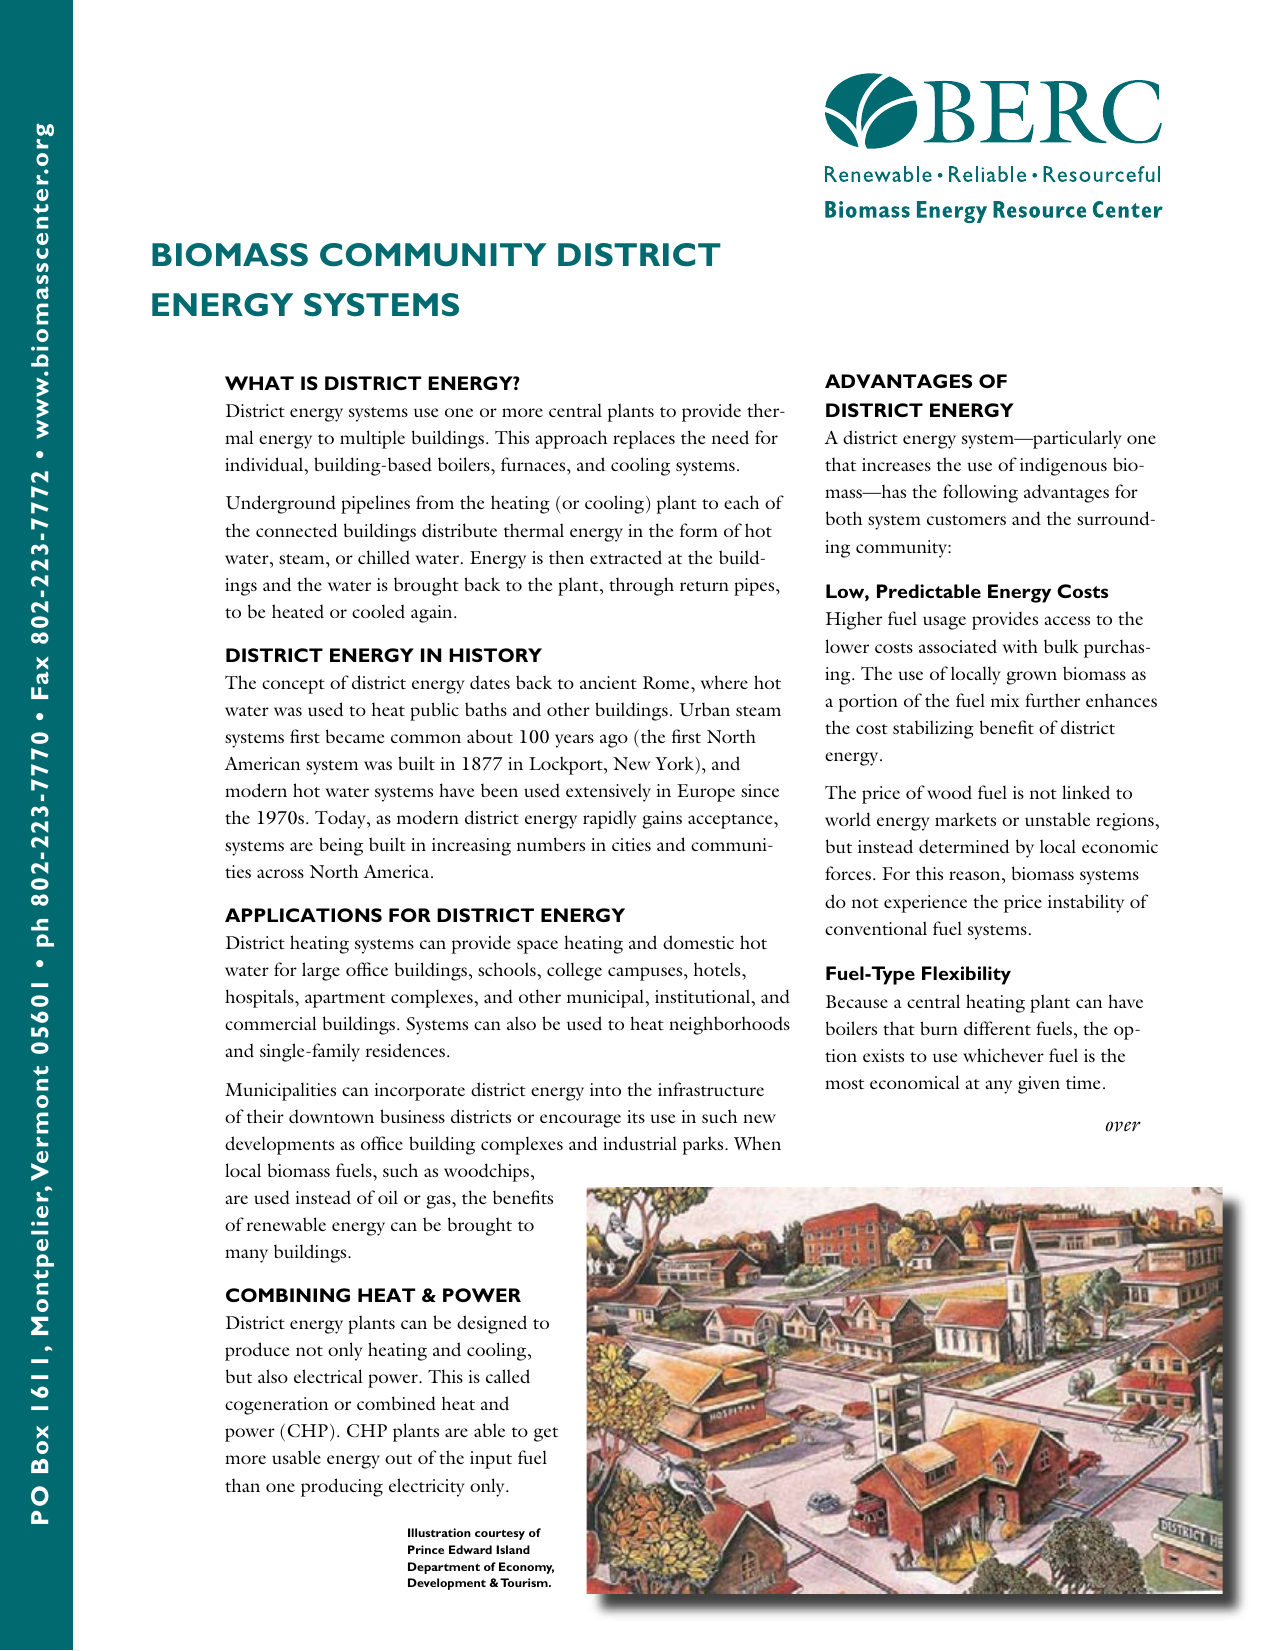 BIOMASS cOMMunIty DIStRIct EnERGy SyStEMS